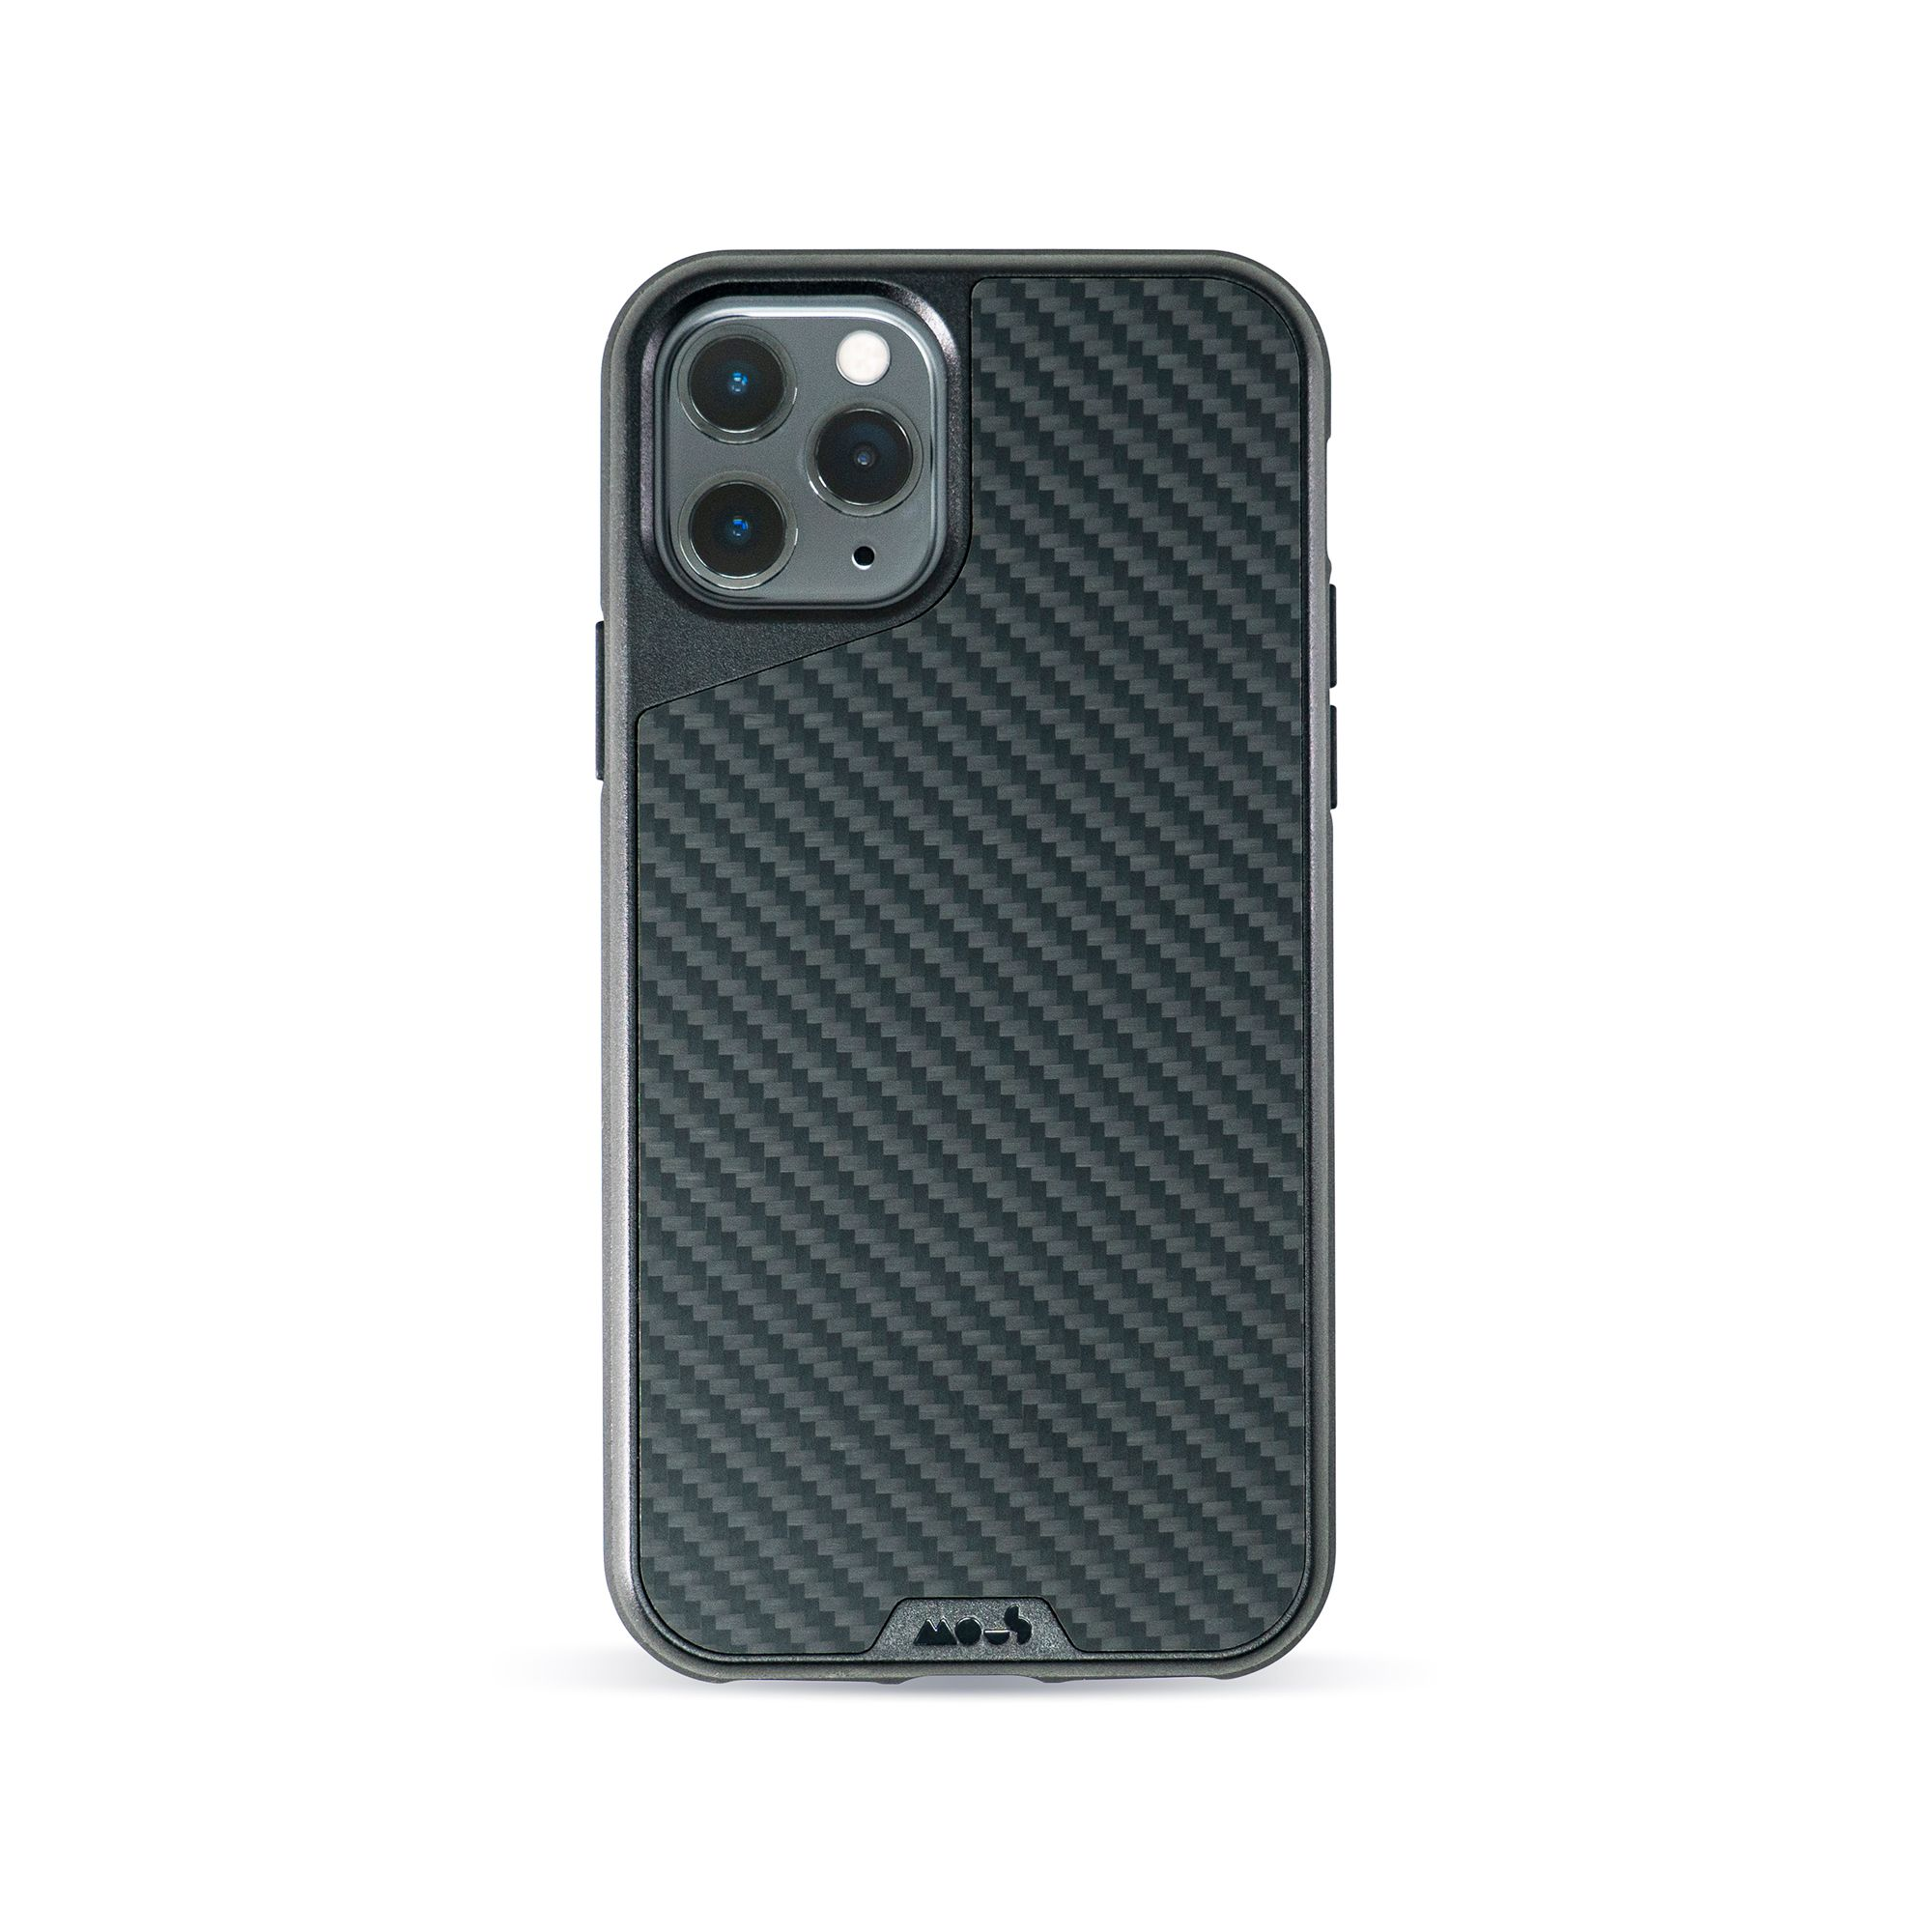 Mous - Protective Case for iPhone 11 Pro - Limitless 3.0 - Aramid Fiber - No Screen Protector